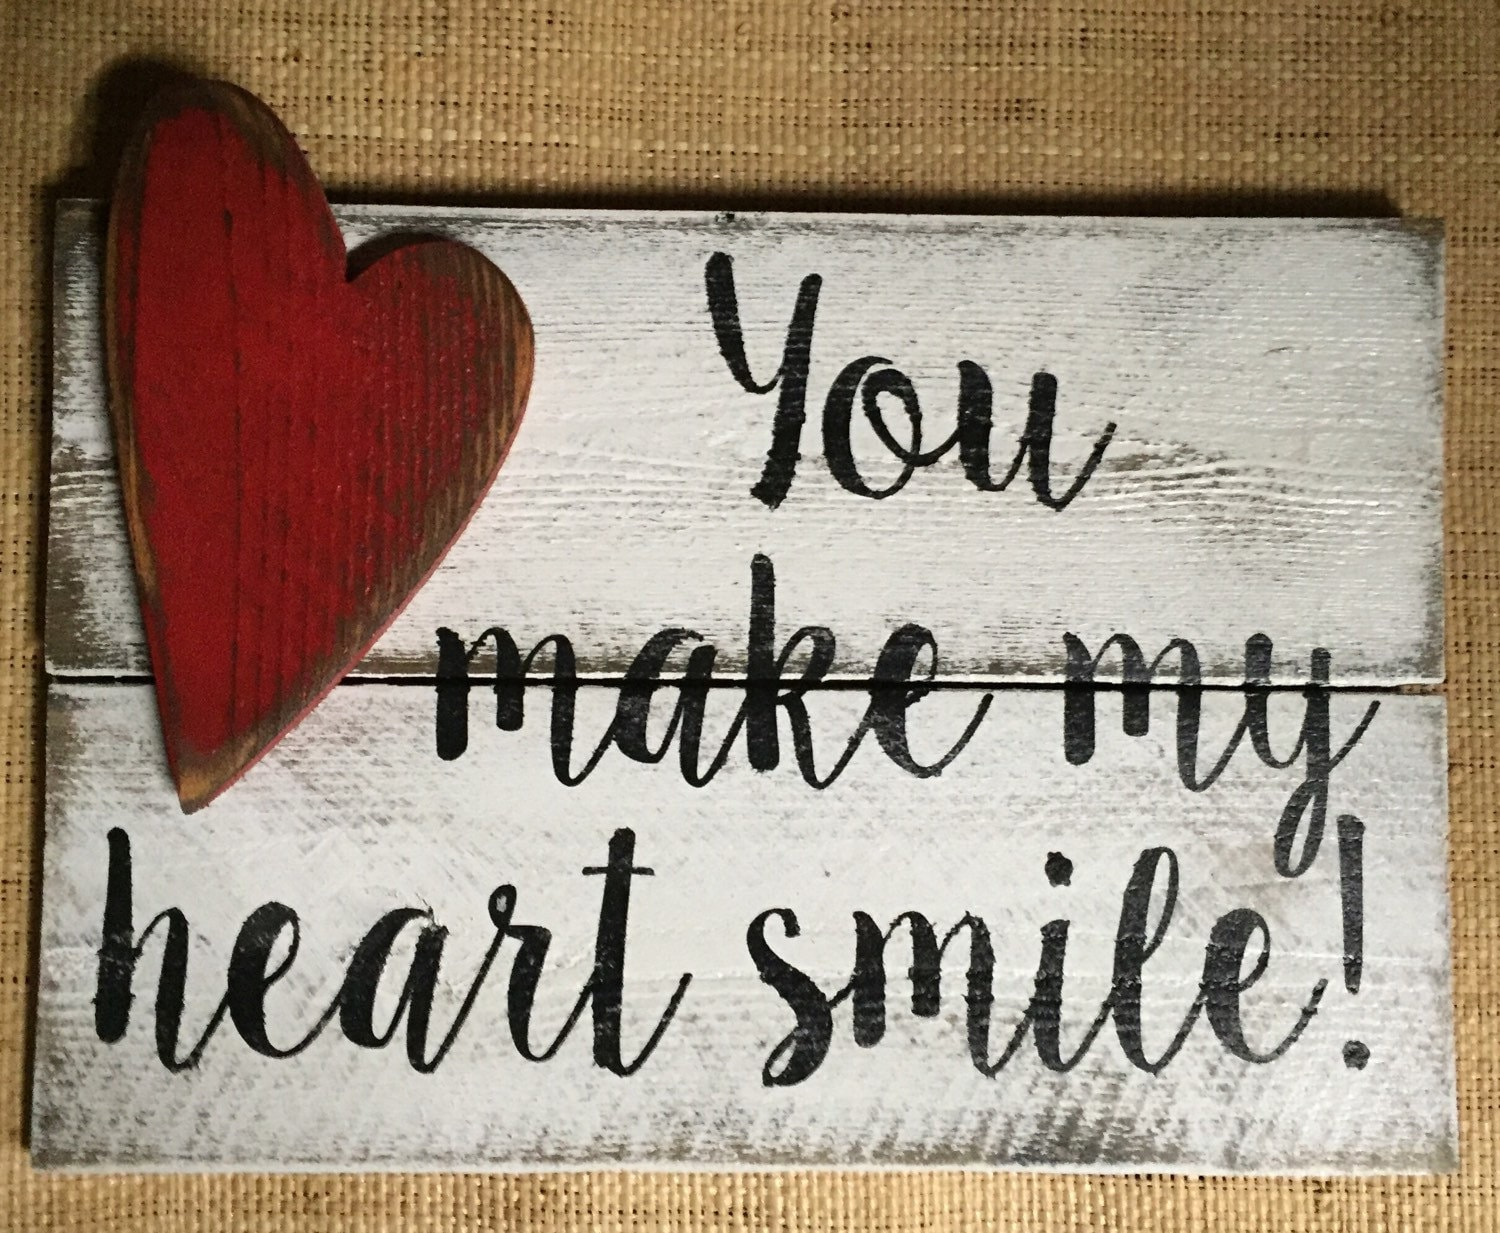 short valentines day quotes sayings - You make my heart smile Wood Sign Handmade & Painted